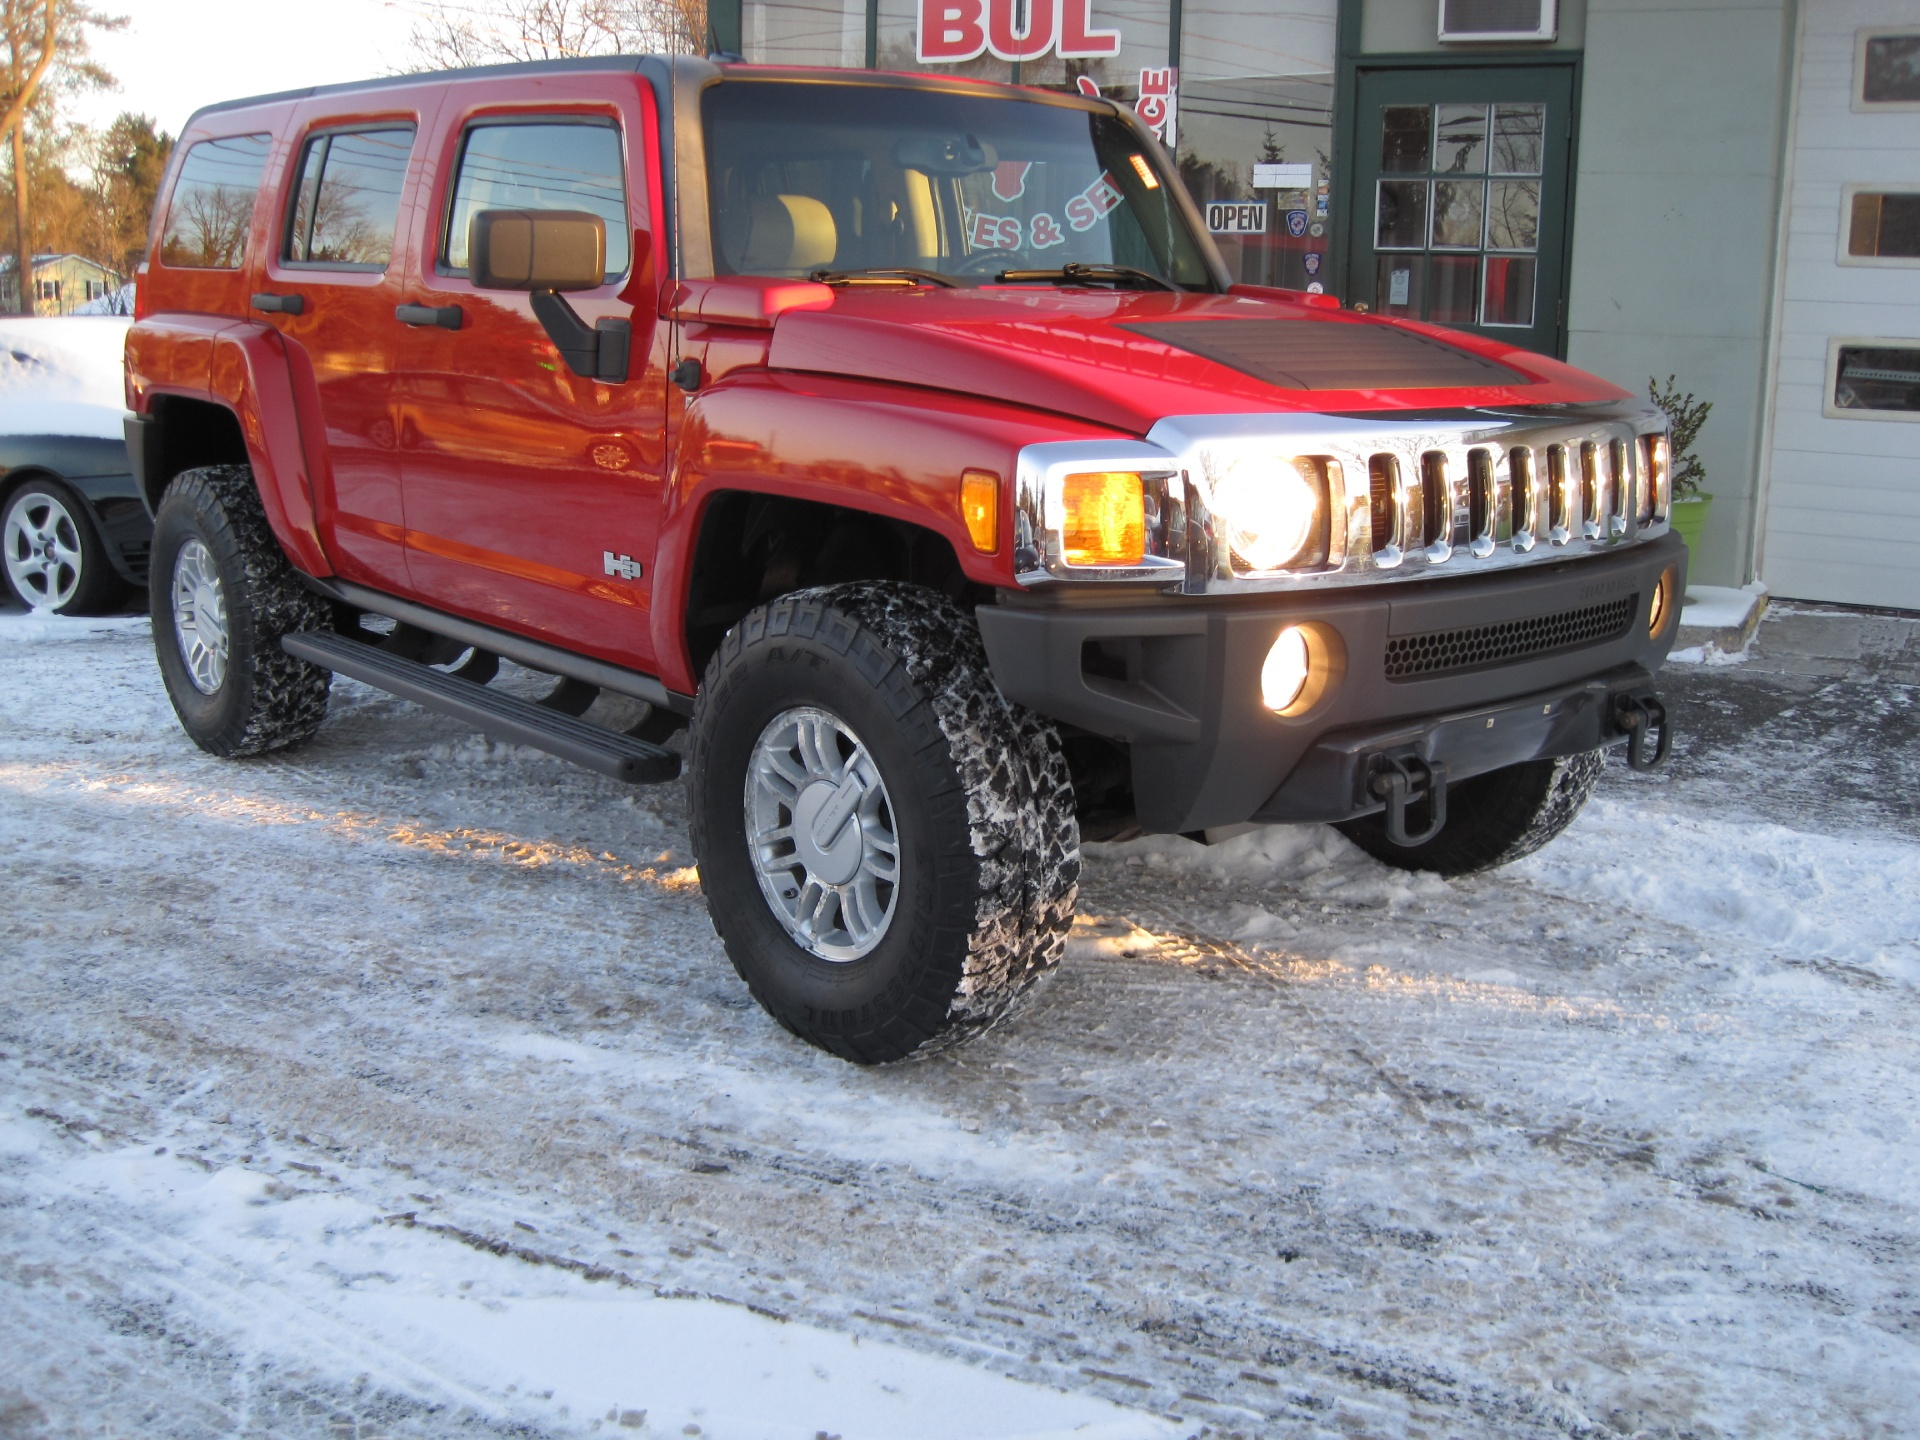 2006 hummer h3 rare 6 speed manual 4wd leather heated seats sunroof rh bulautosales com 2006 hummer h3 repair manual 2006 h3 hummer owners manual